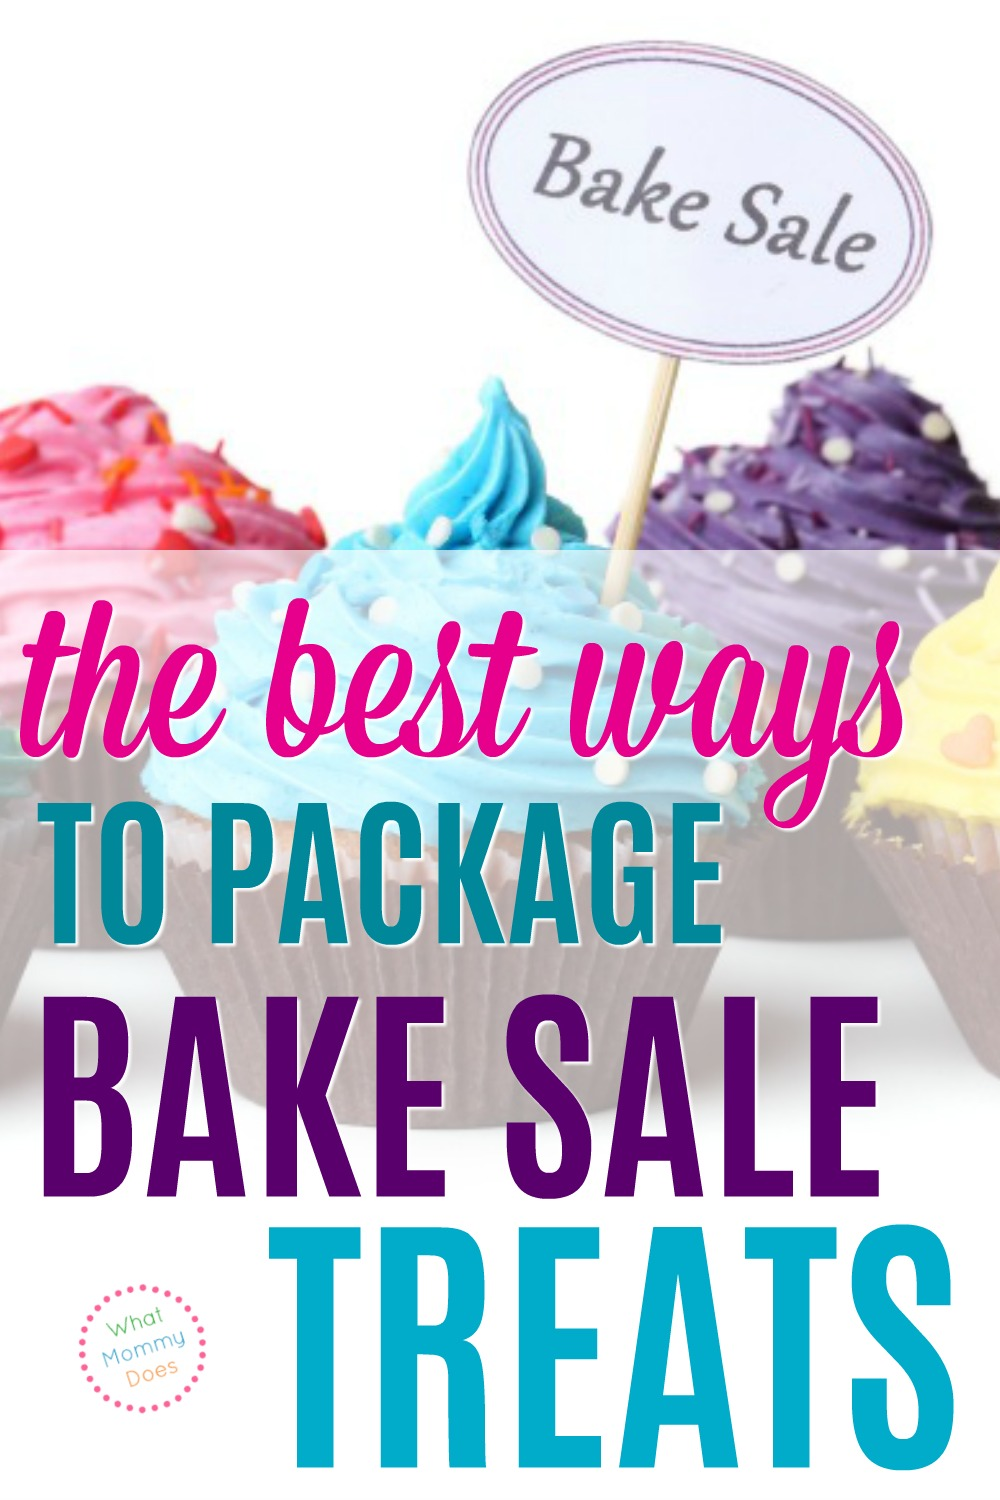 If you want to sell out at your next school or sports fundraiser, then try these unique bake sale wrapping ideas!!….We are going to use idea #3 to raise money for our club's next sales event. I love the exact ribbons + creative packages she mentioned!